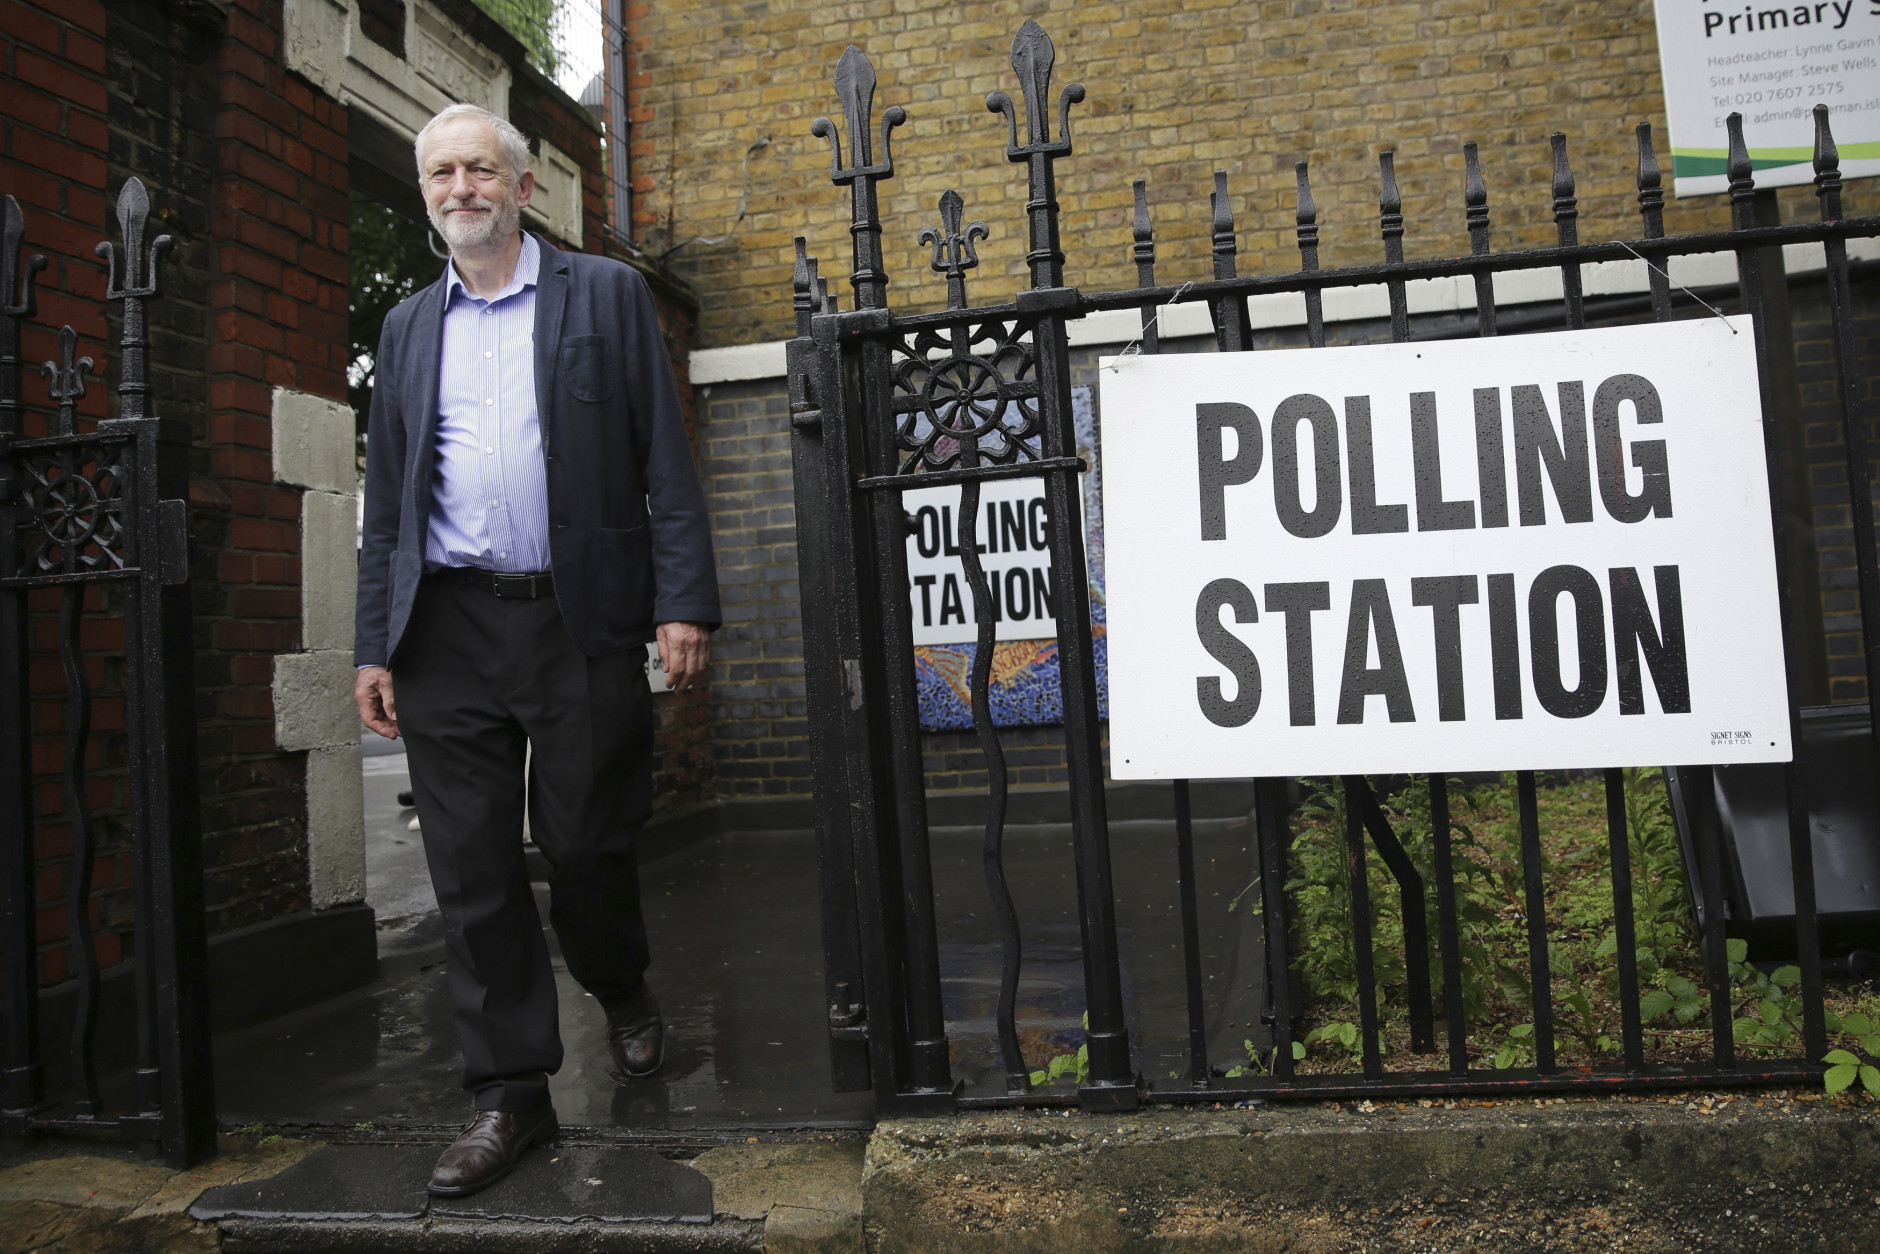 Britain's Labour Party leader Jeremy Corbyn leaves after casting his vote in the EU referendum at a polling station in Islington, London Thursday June 23, 2016. Voters in Britain are deciding Thursday whether the country should remain in the European Union. (Daniel Leal-Olivas/PA via AP) UNITED KINGDOM OUT - NO SALES - NO ARCHIVE